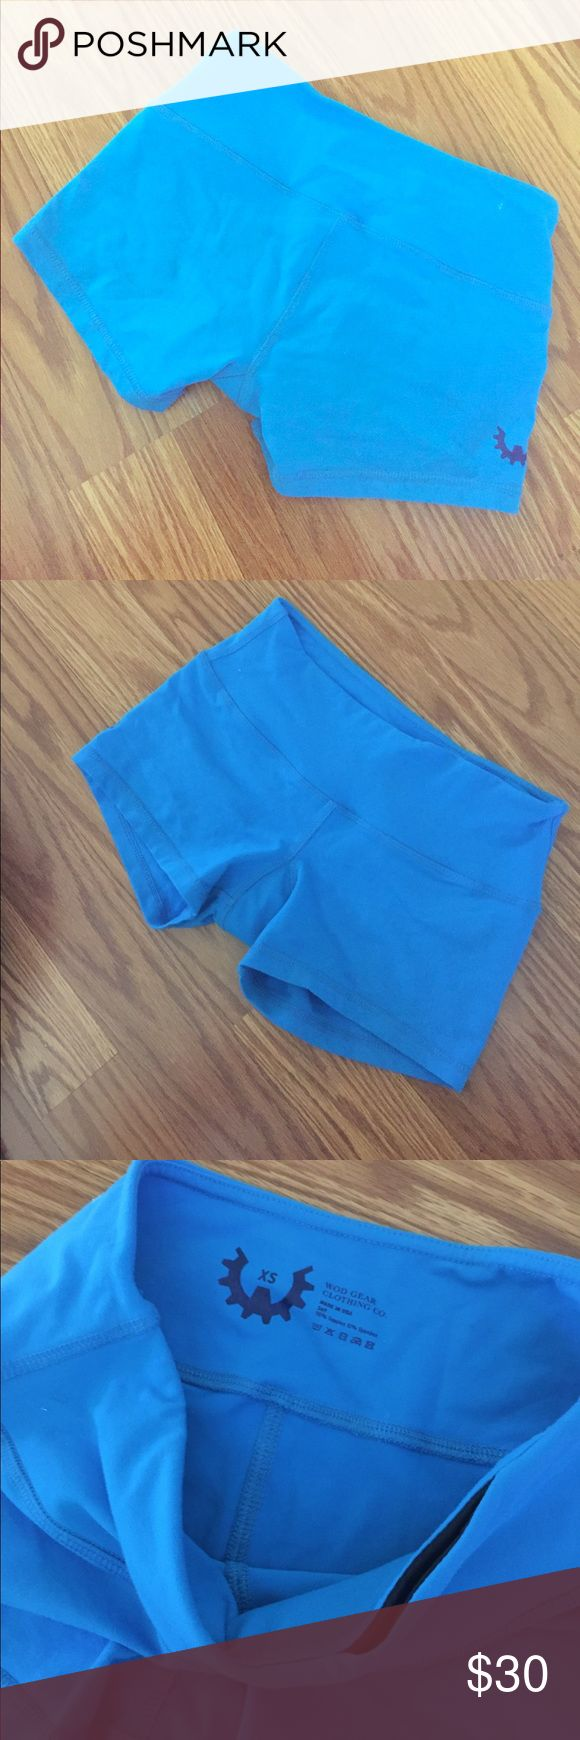 """Like New! WOD Gear Booty Shorts Love them but a little small for me. No signs of wear!! Crossfit / workout booty shorts - looks like a 2"""" inseam. Color is a bright medium blue - 2nd and 3rd pics are most accurate. WOD Gear Shorts"""